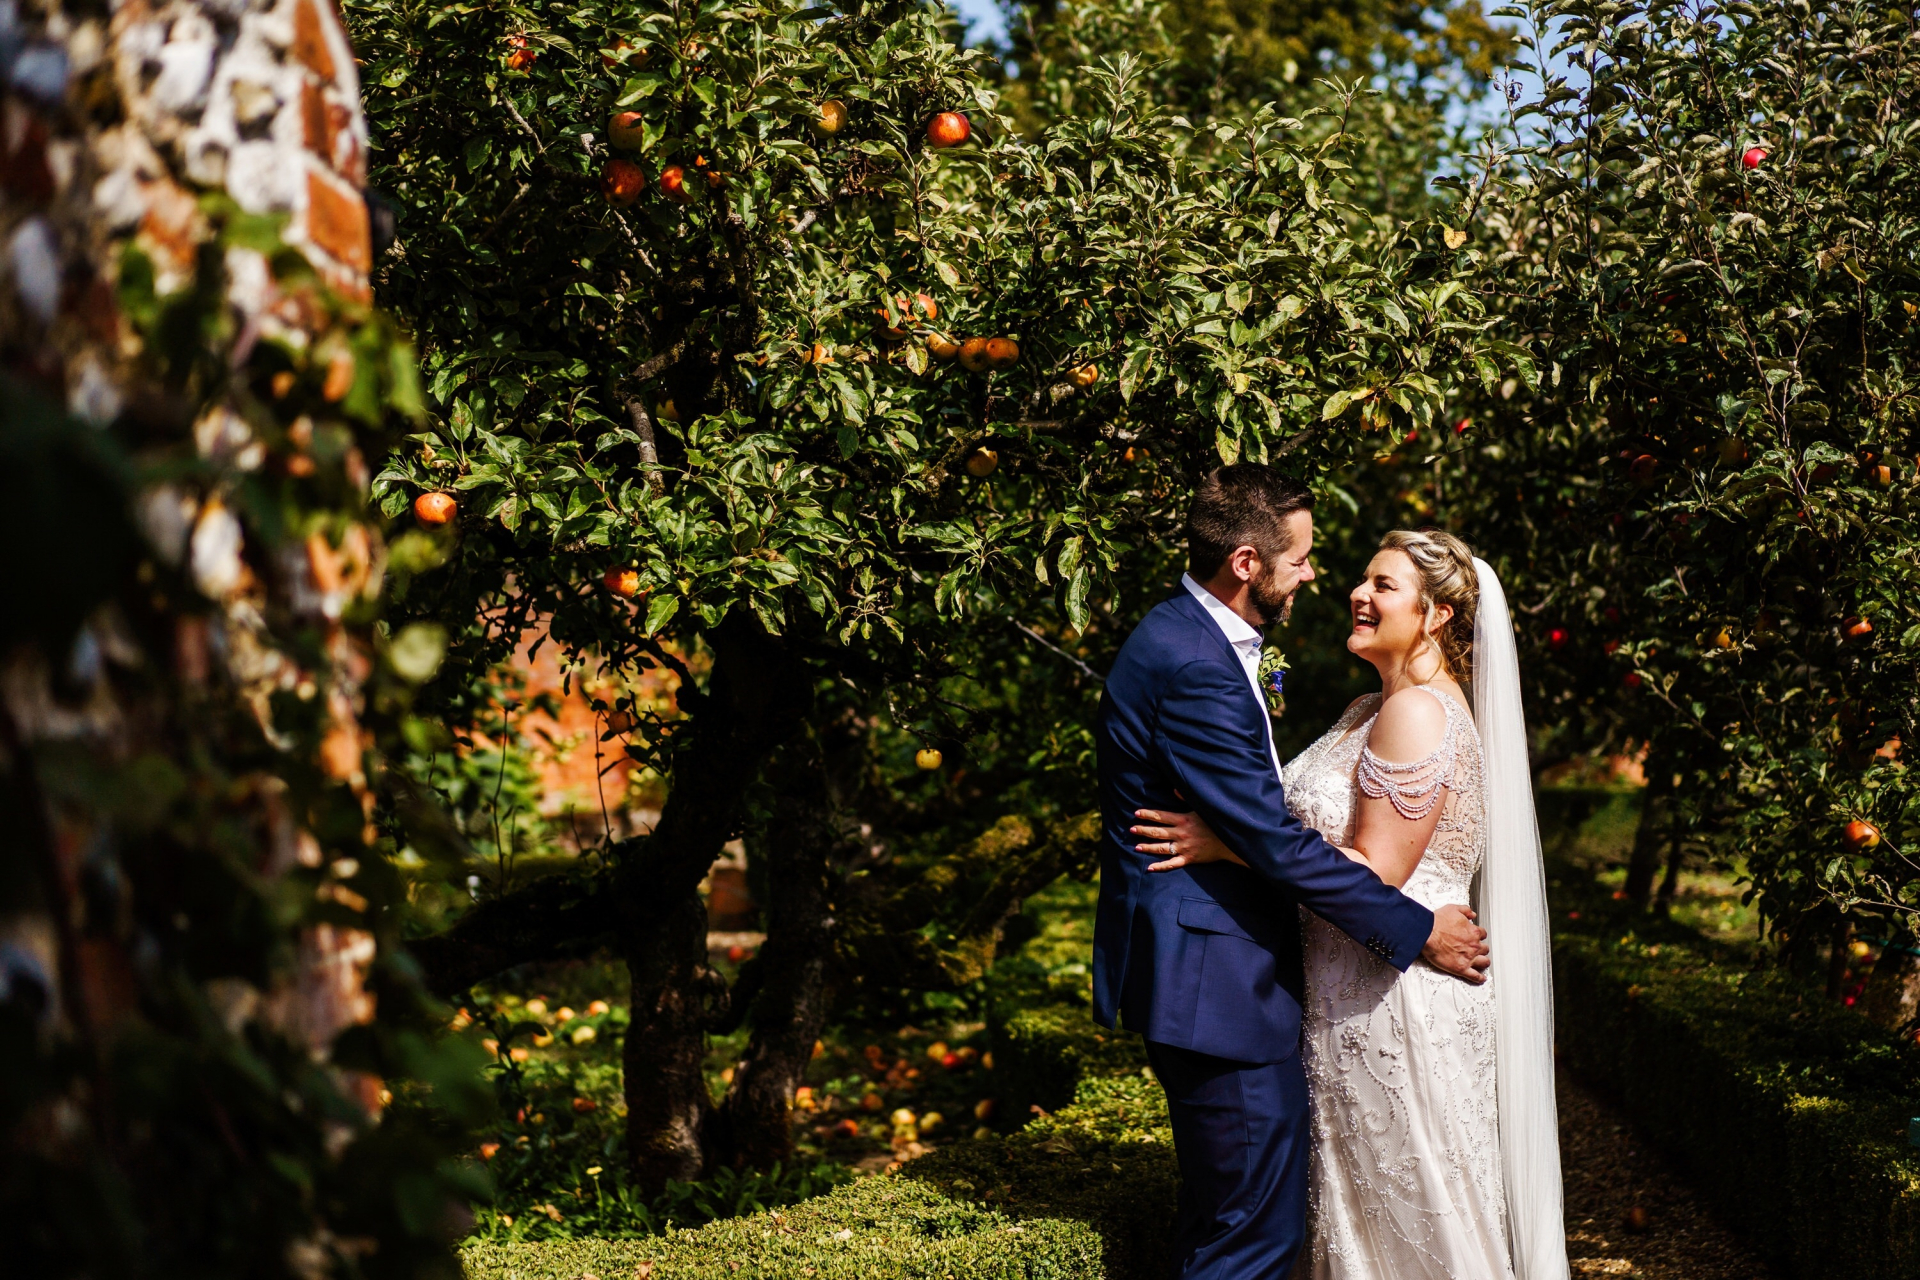 Gunthorpe Hall Wedding Photos | The bride and groom stand together smiling and laughing